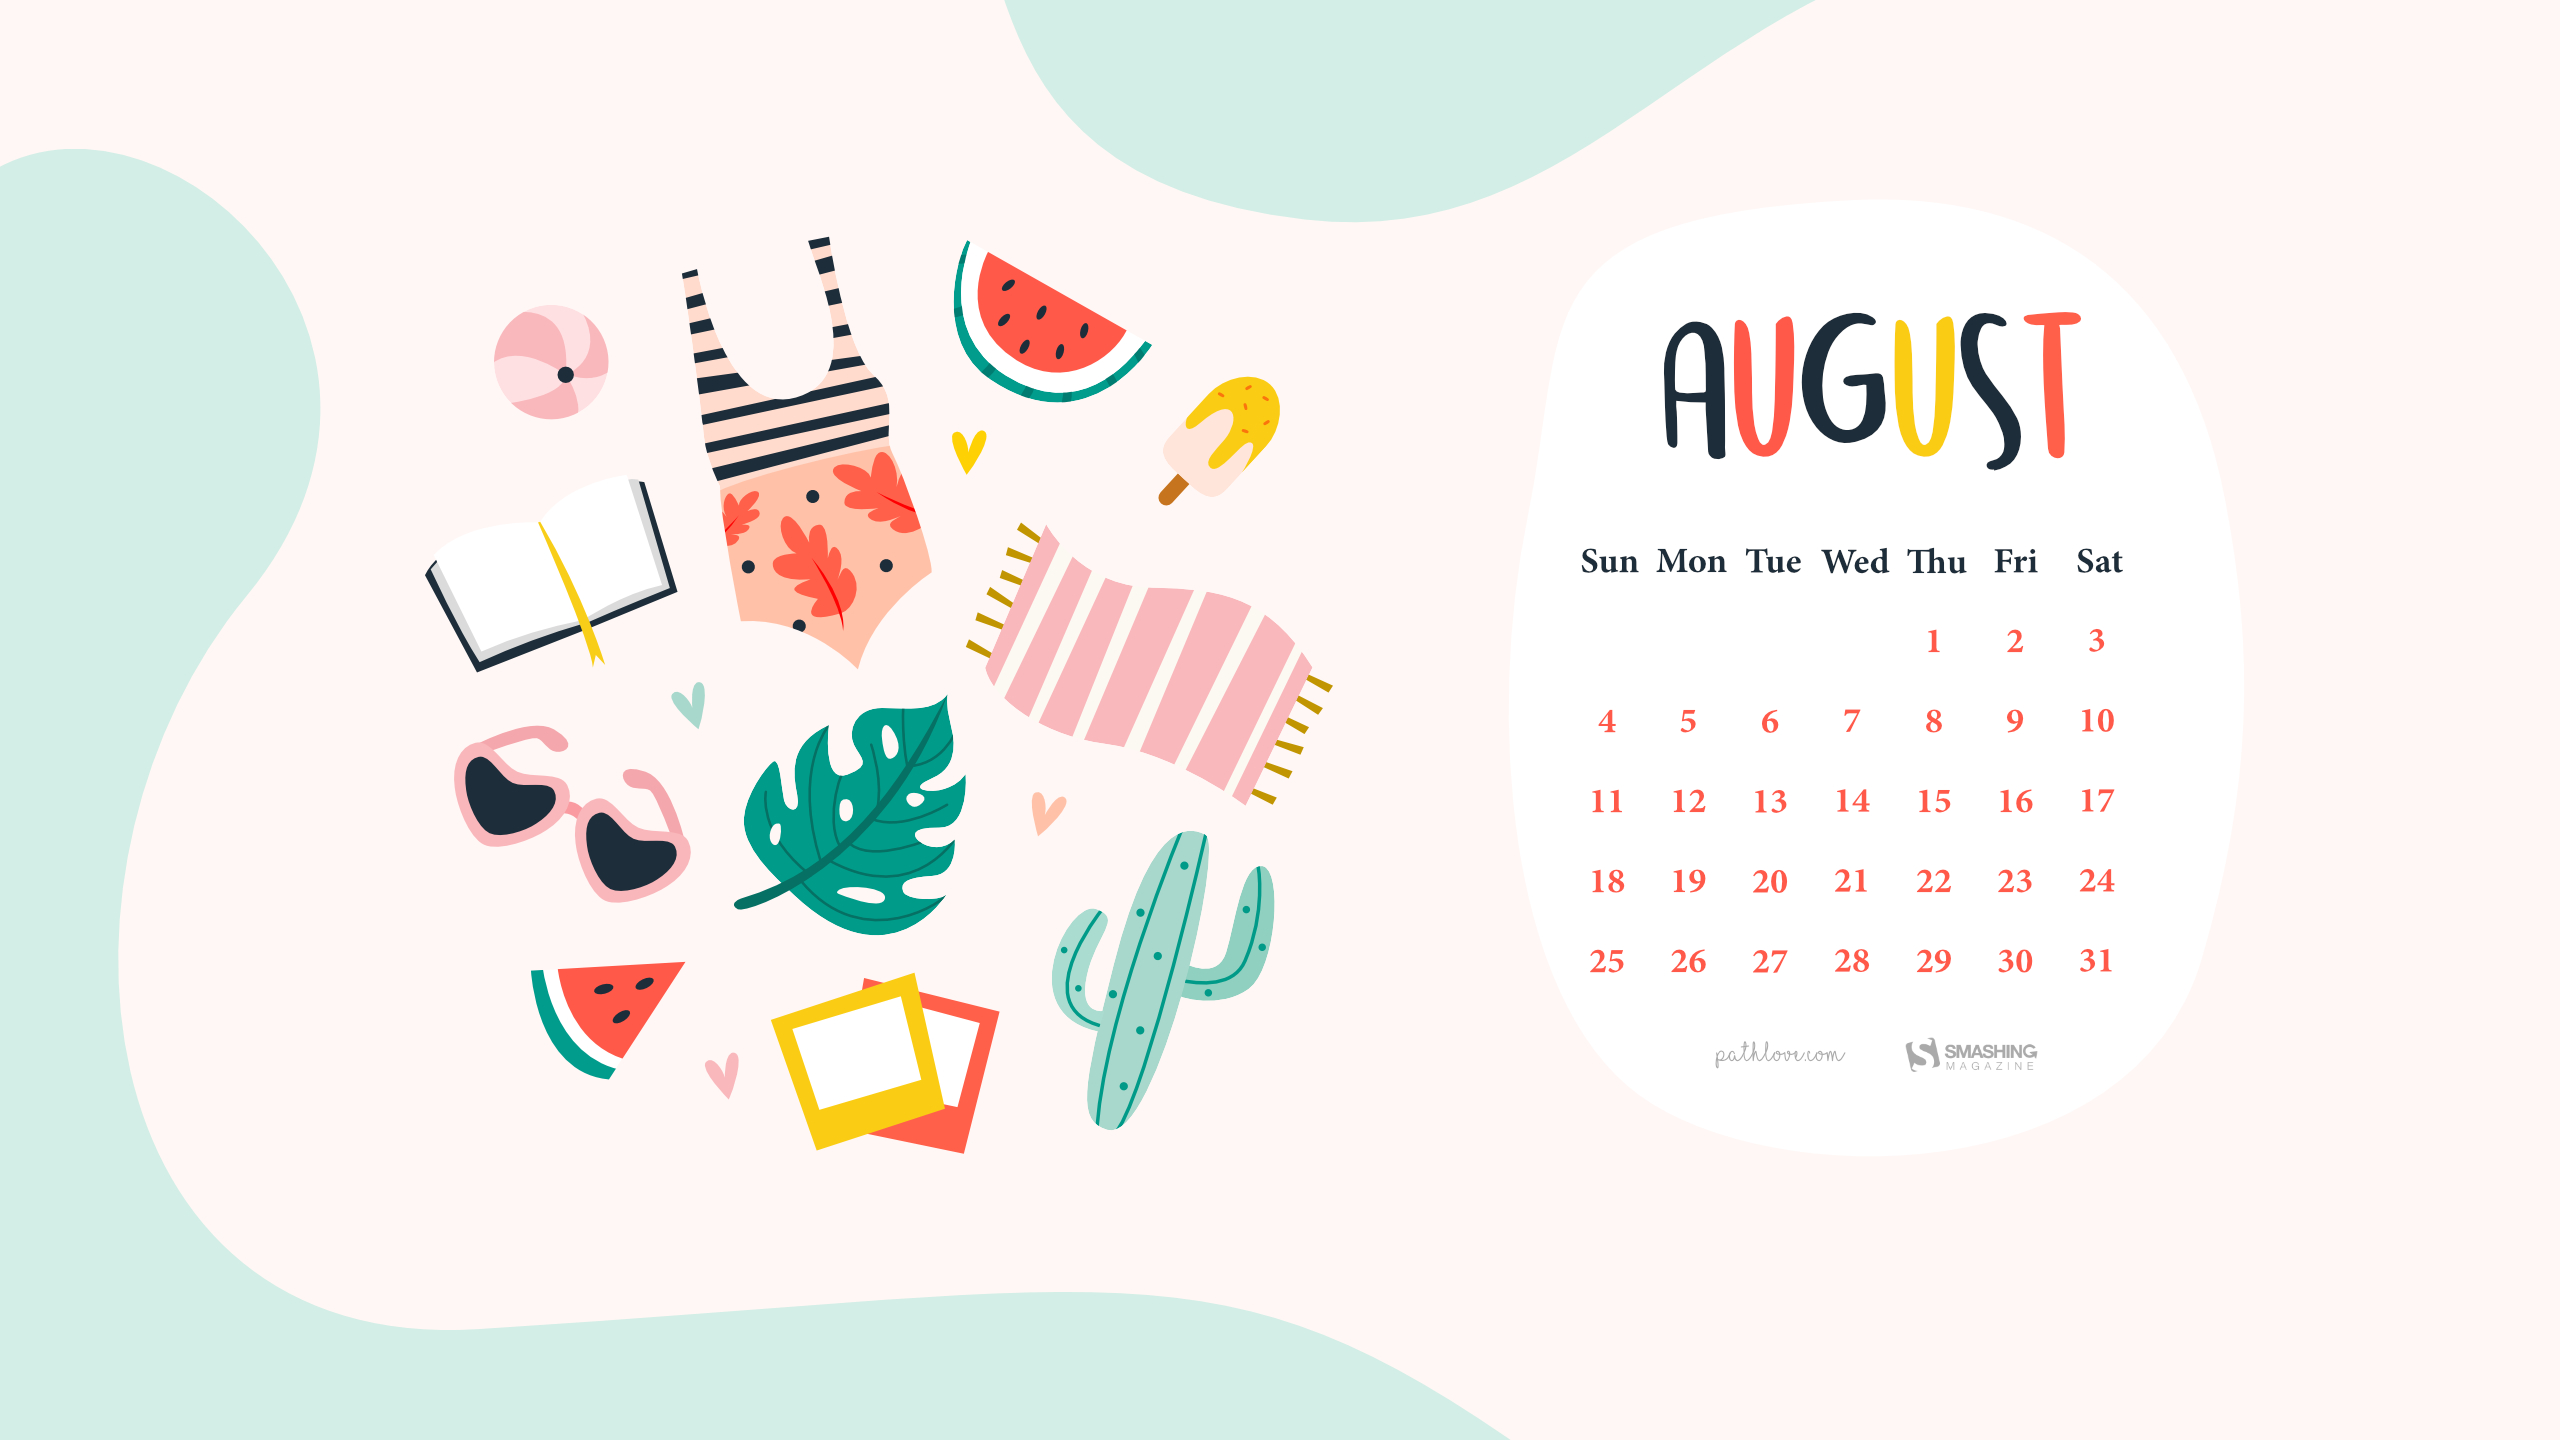 Adventures In August 2019 Wallpapers Edition Smashing Magazine 2560x1440